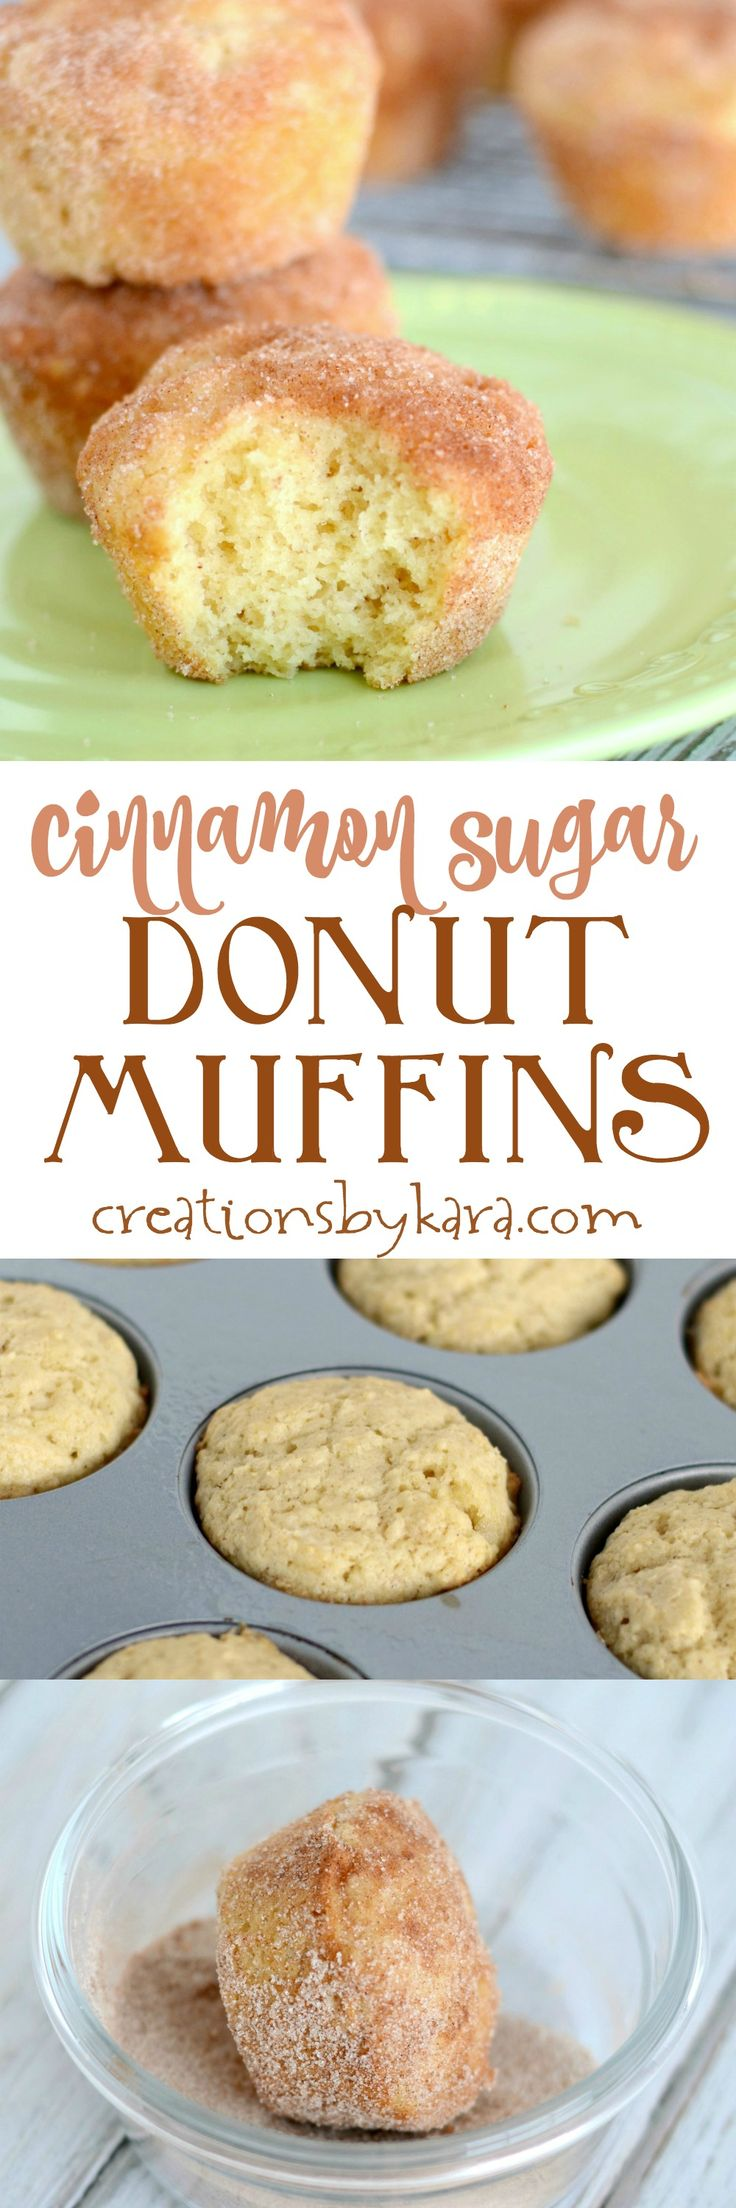 If you love cinnamon donuts, you will love these Cinnamon Sugar Donut Muffins. A favorite muffin recipe for breakfast, brunch, or snacking. Everyone loves these muffins!